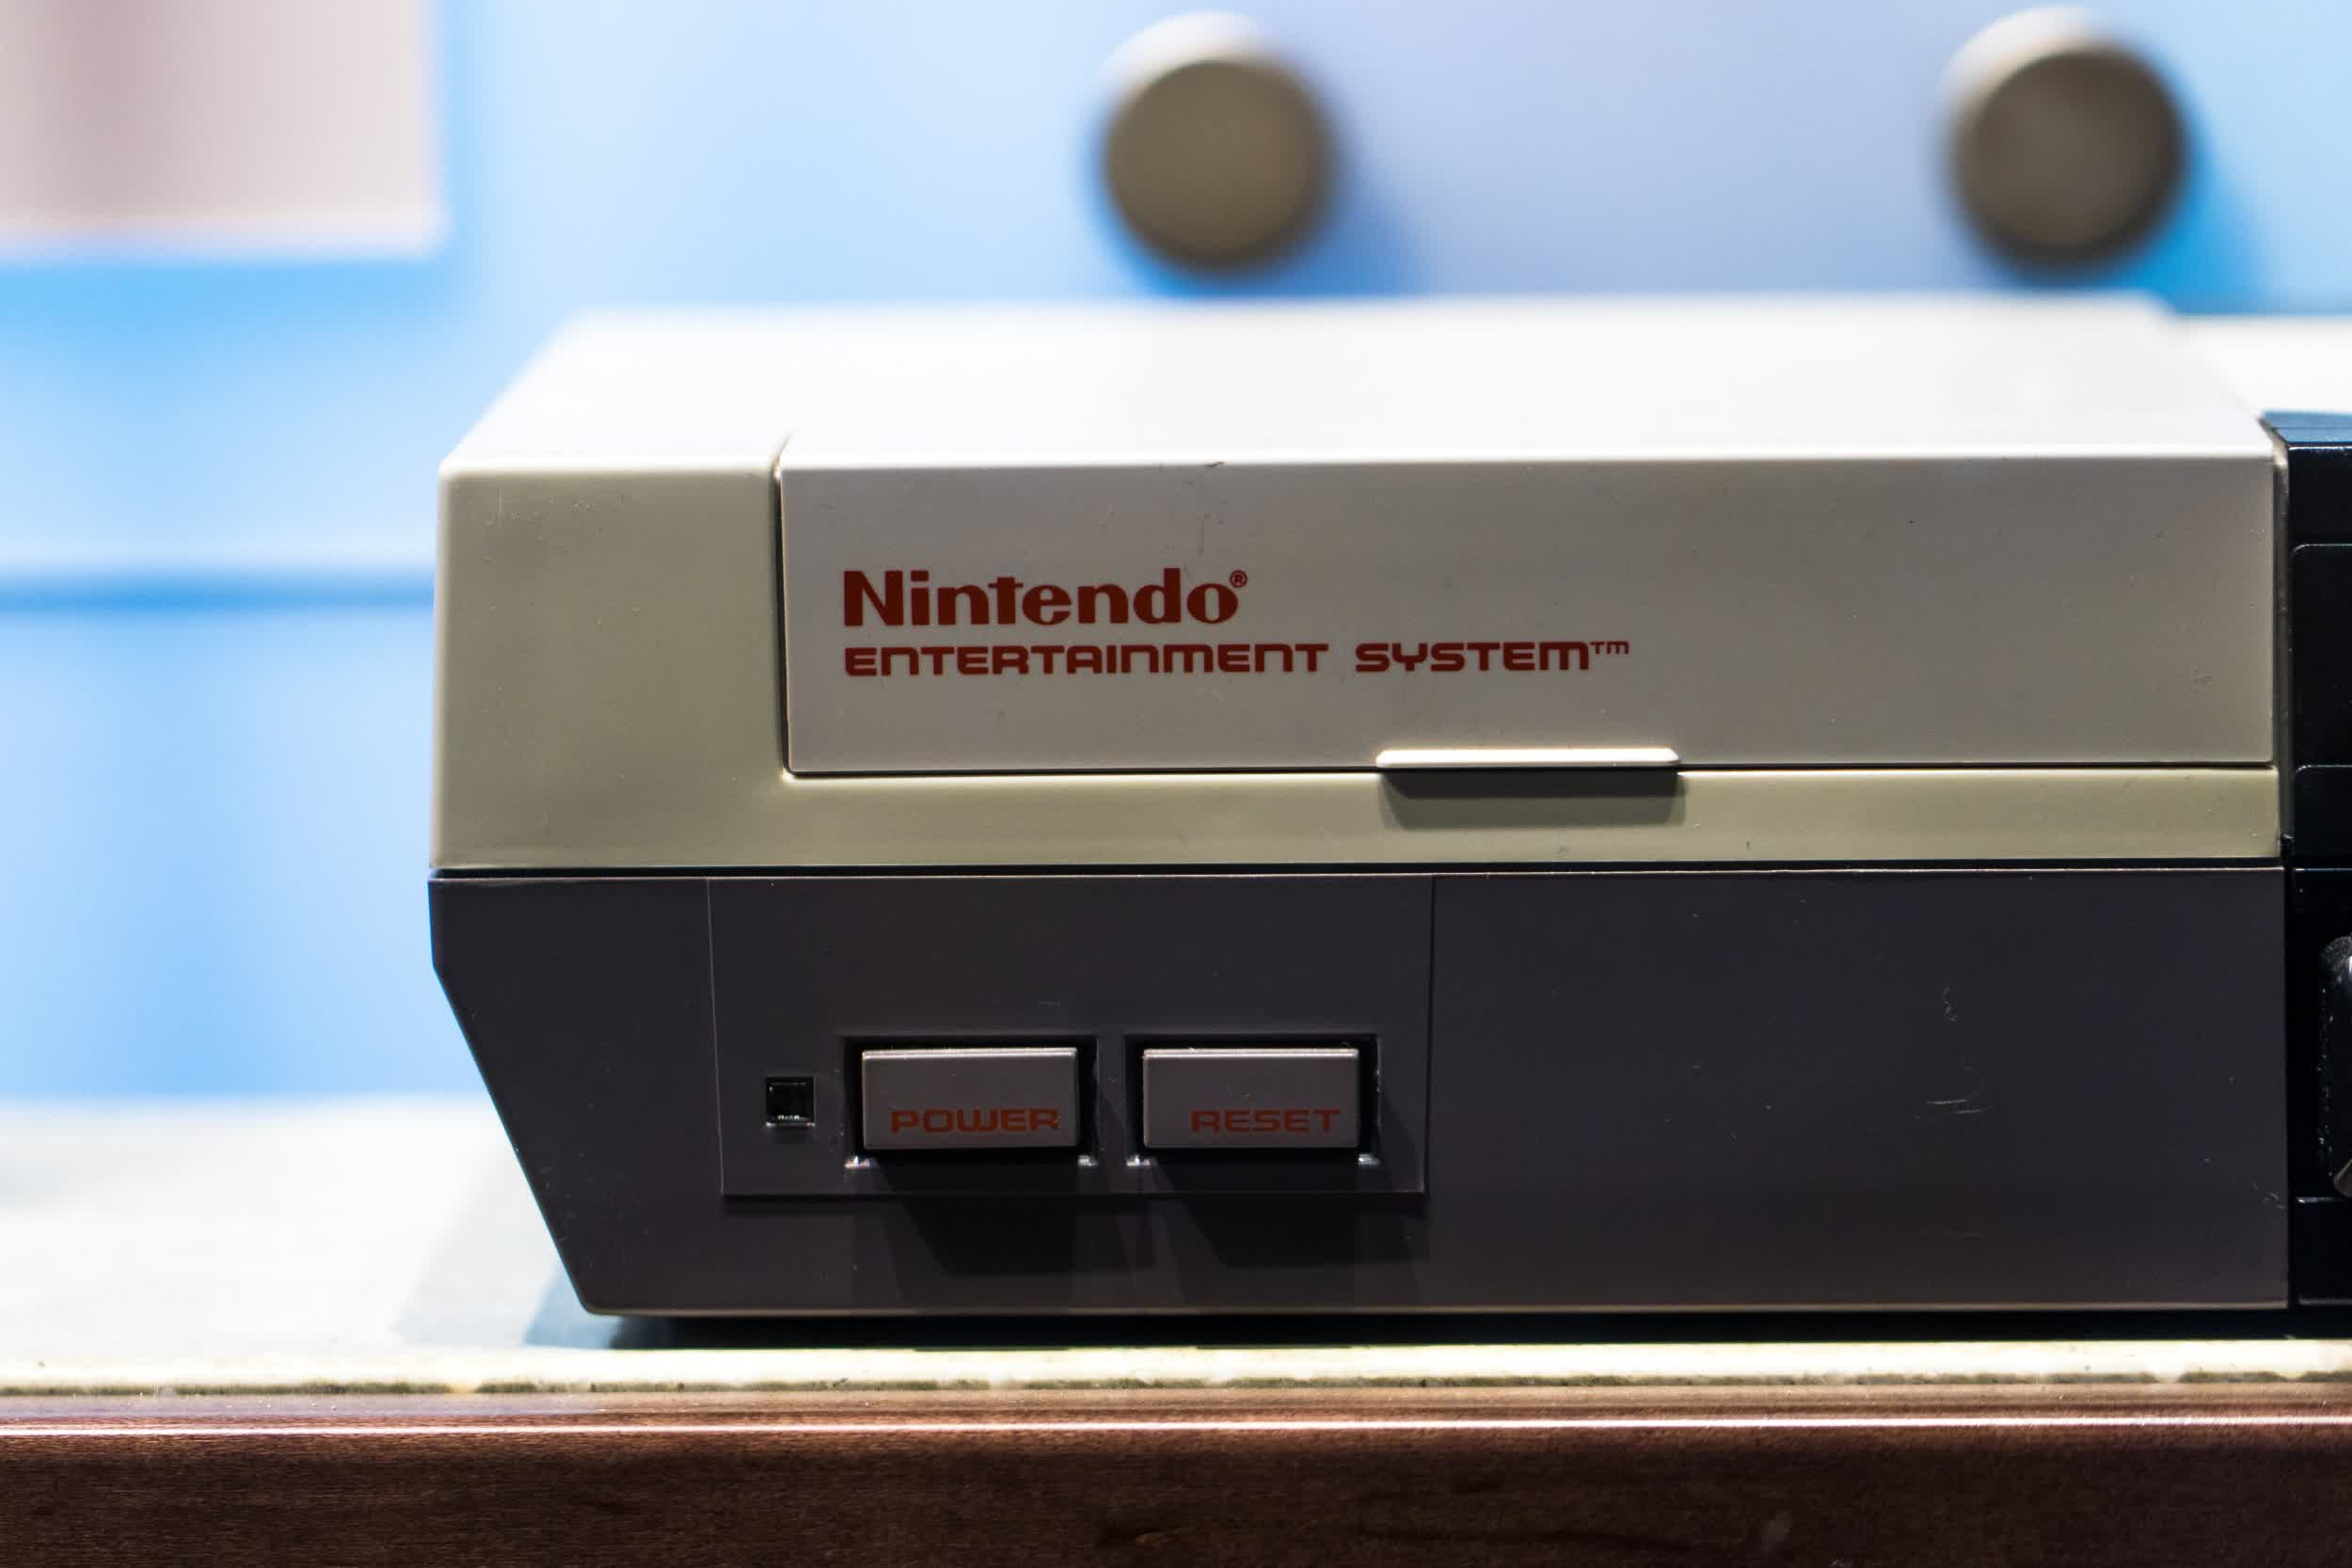 Nintendo designer responsible for NES and SNES retires after nearly 39 years